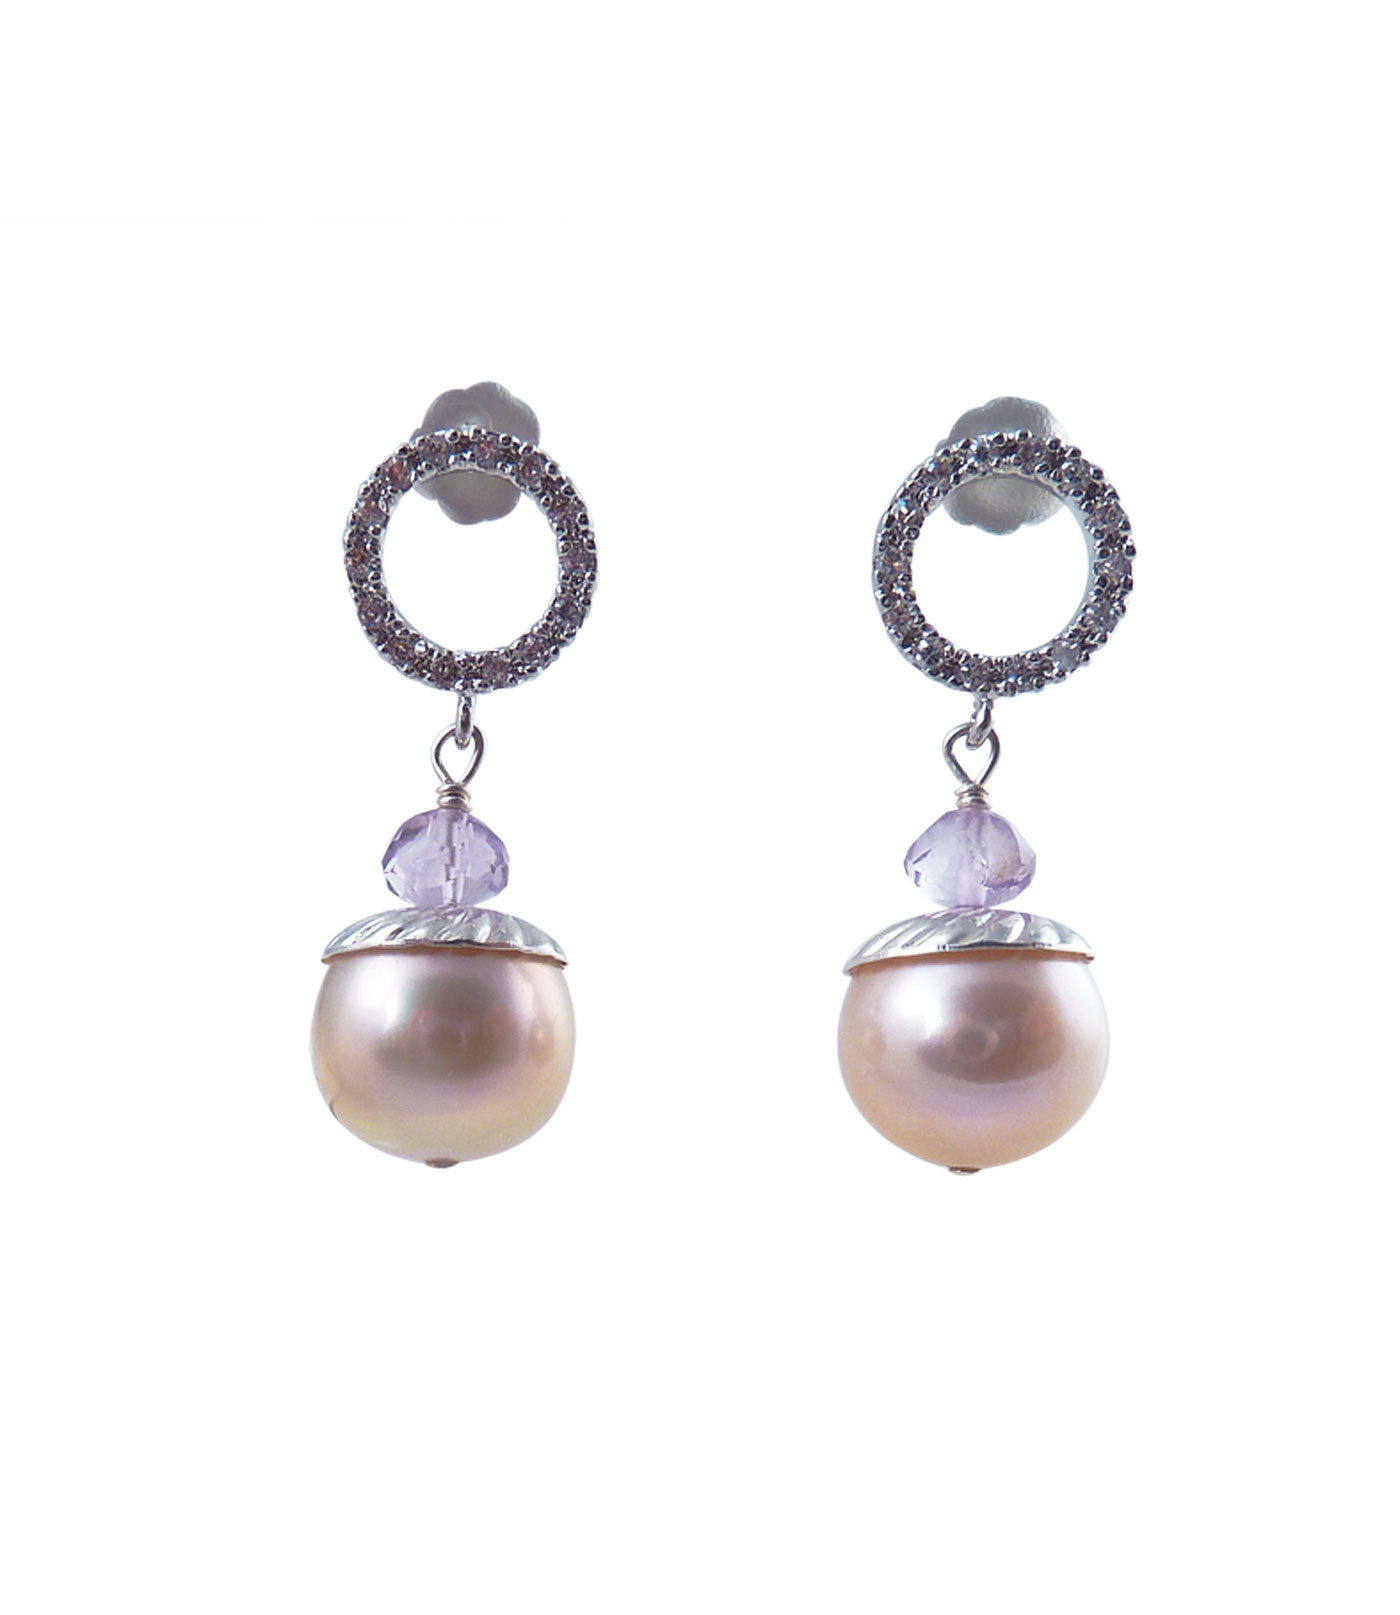 earrings pearls ted muehling pearl pink jewelry designers small insp august shop